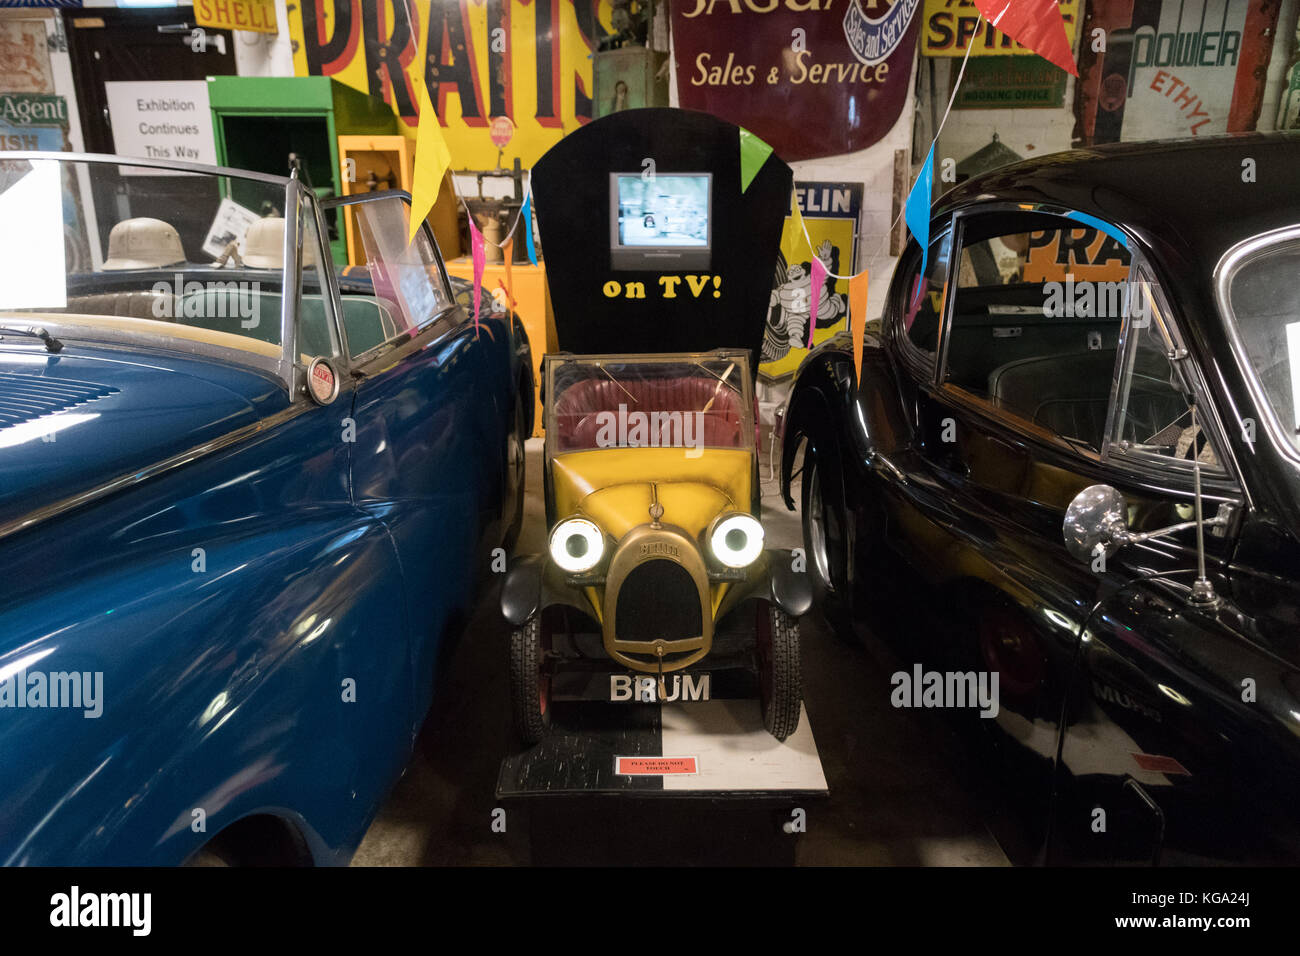 Brum at the Cotswold Motoring Museum, Bourton on the Water, Gloucestershire, England, UK - Stock Image